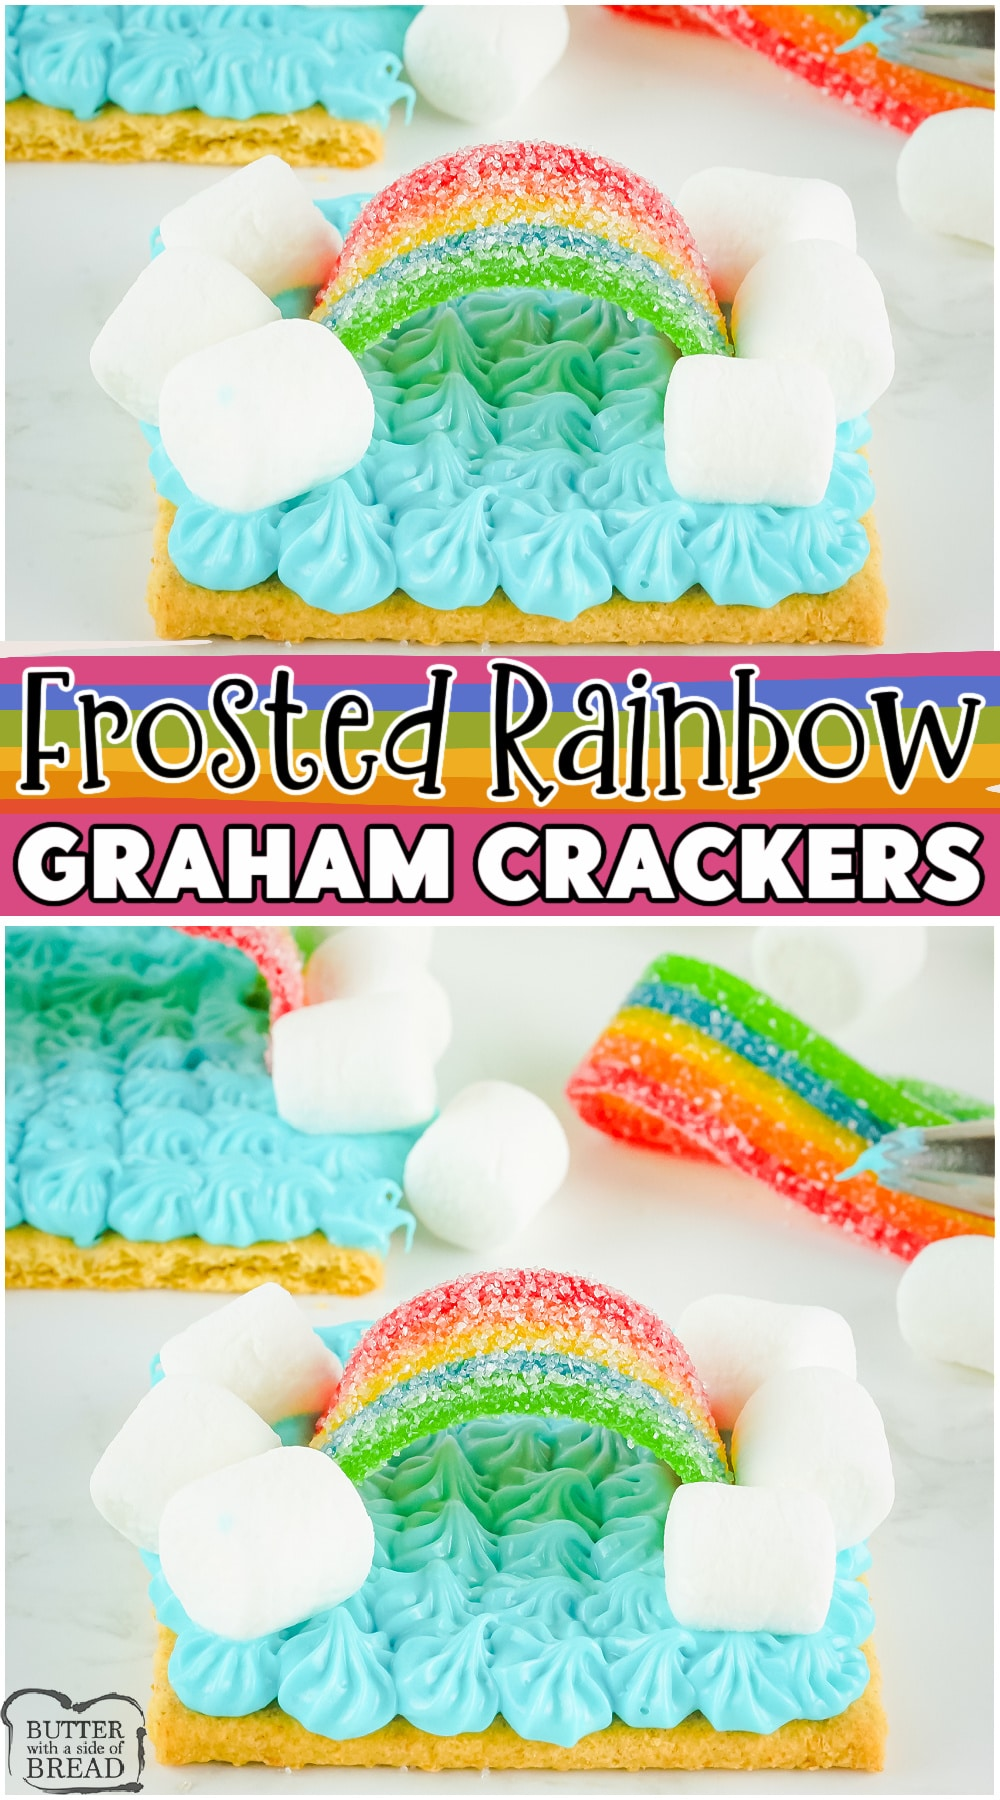 Frosted Rainbow Graham Cracker snacks made with marshmallows, frosting, & a rainbow candy stripe atop a cracker; these treats are packed with sweet fun in every bite. #snack #frosting #rainbow #crackers #easyrecipe from BUTTER WITH A SIDE OF BREAD